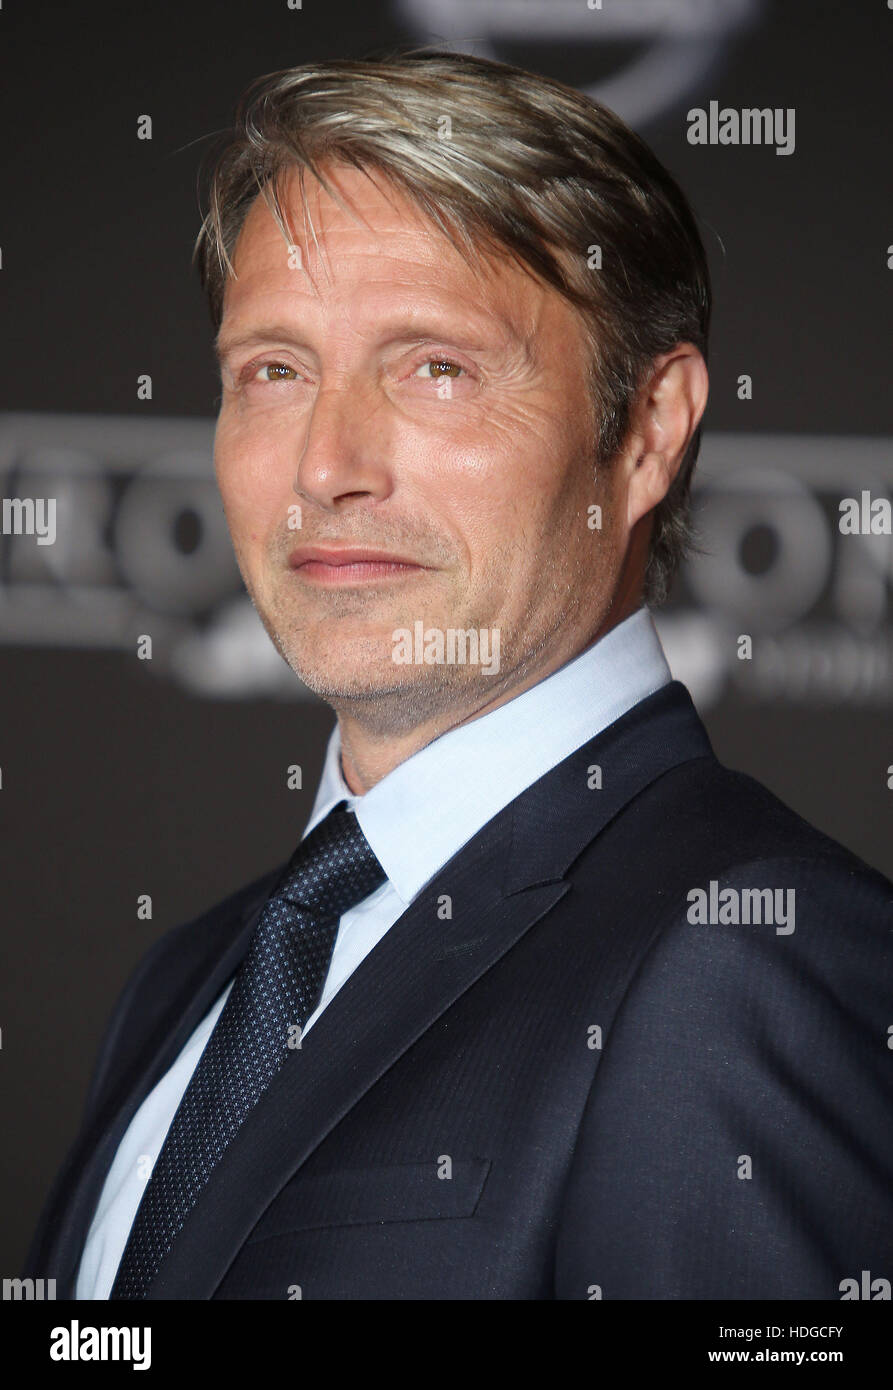 Hollywood, CA, Stati Uniti d'America. Decimo Dec, 2016. 10 Dicembre 2016 - Hollywood, California - Mads Mikkelsen. Immagini Stock